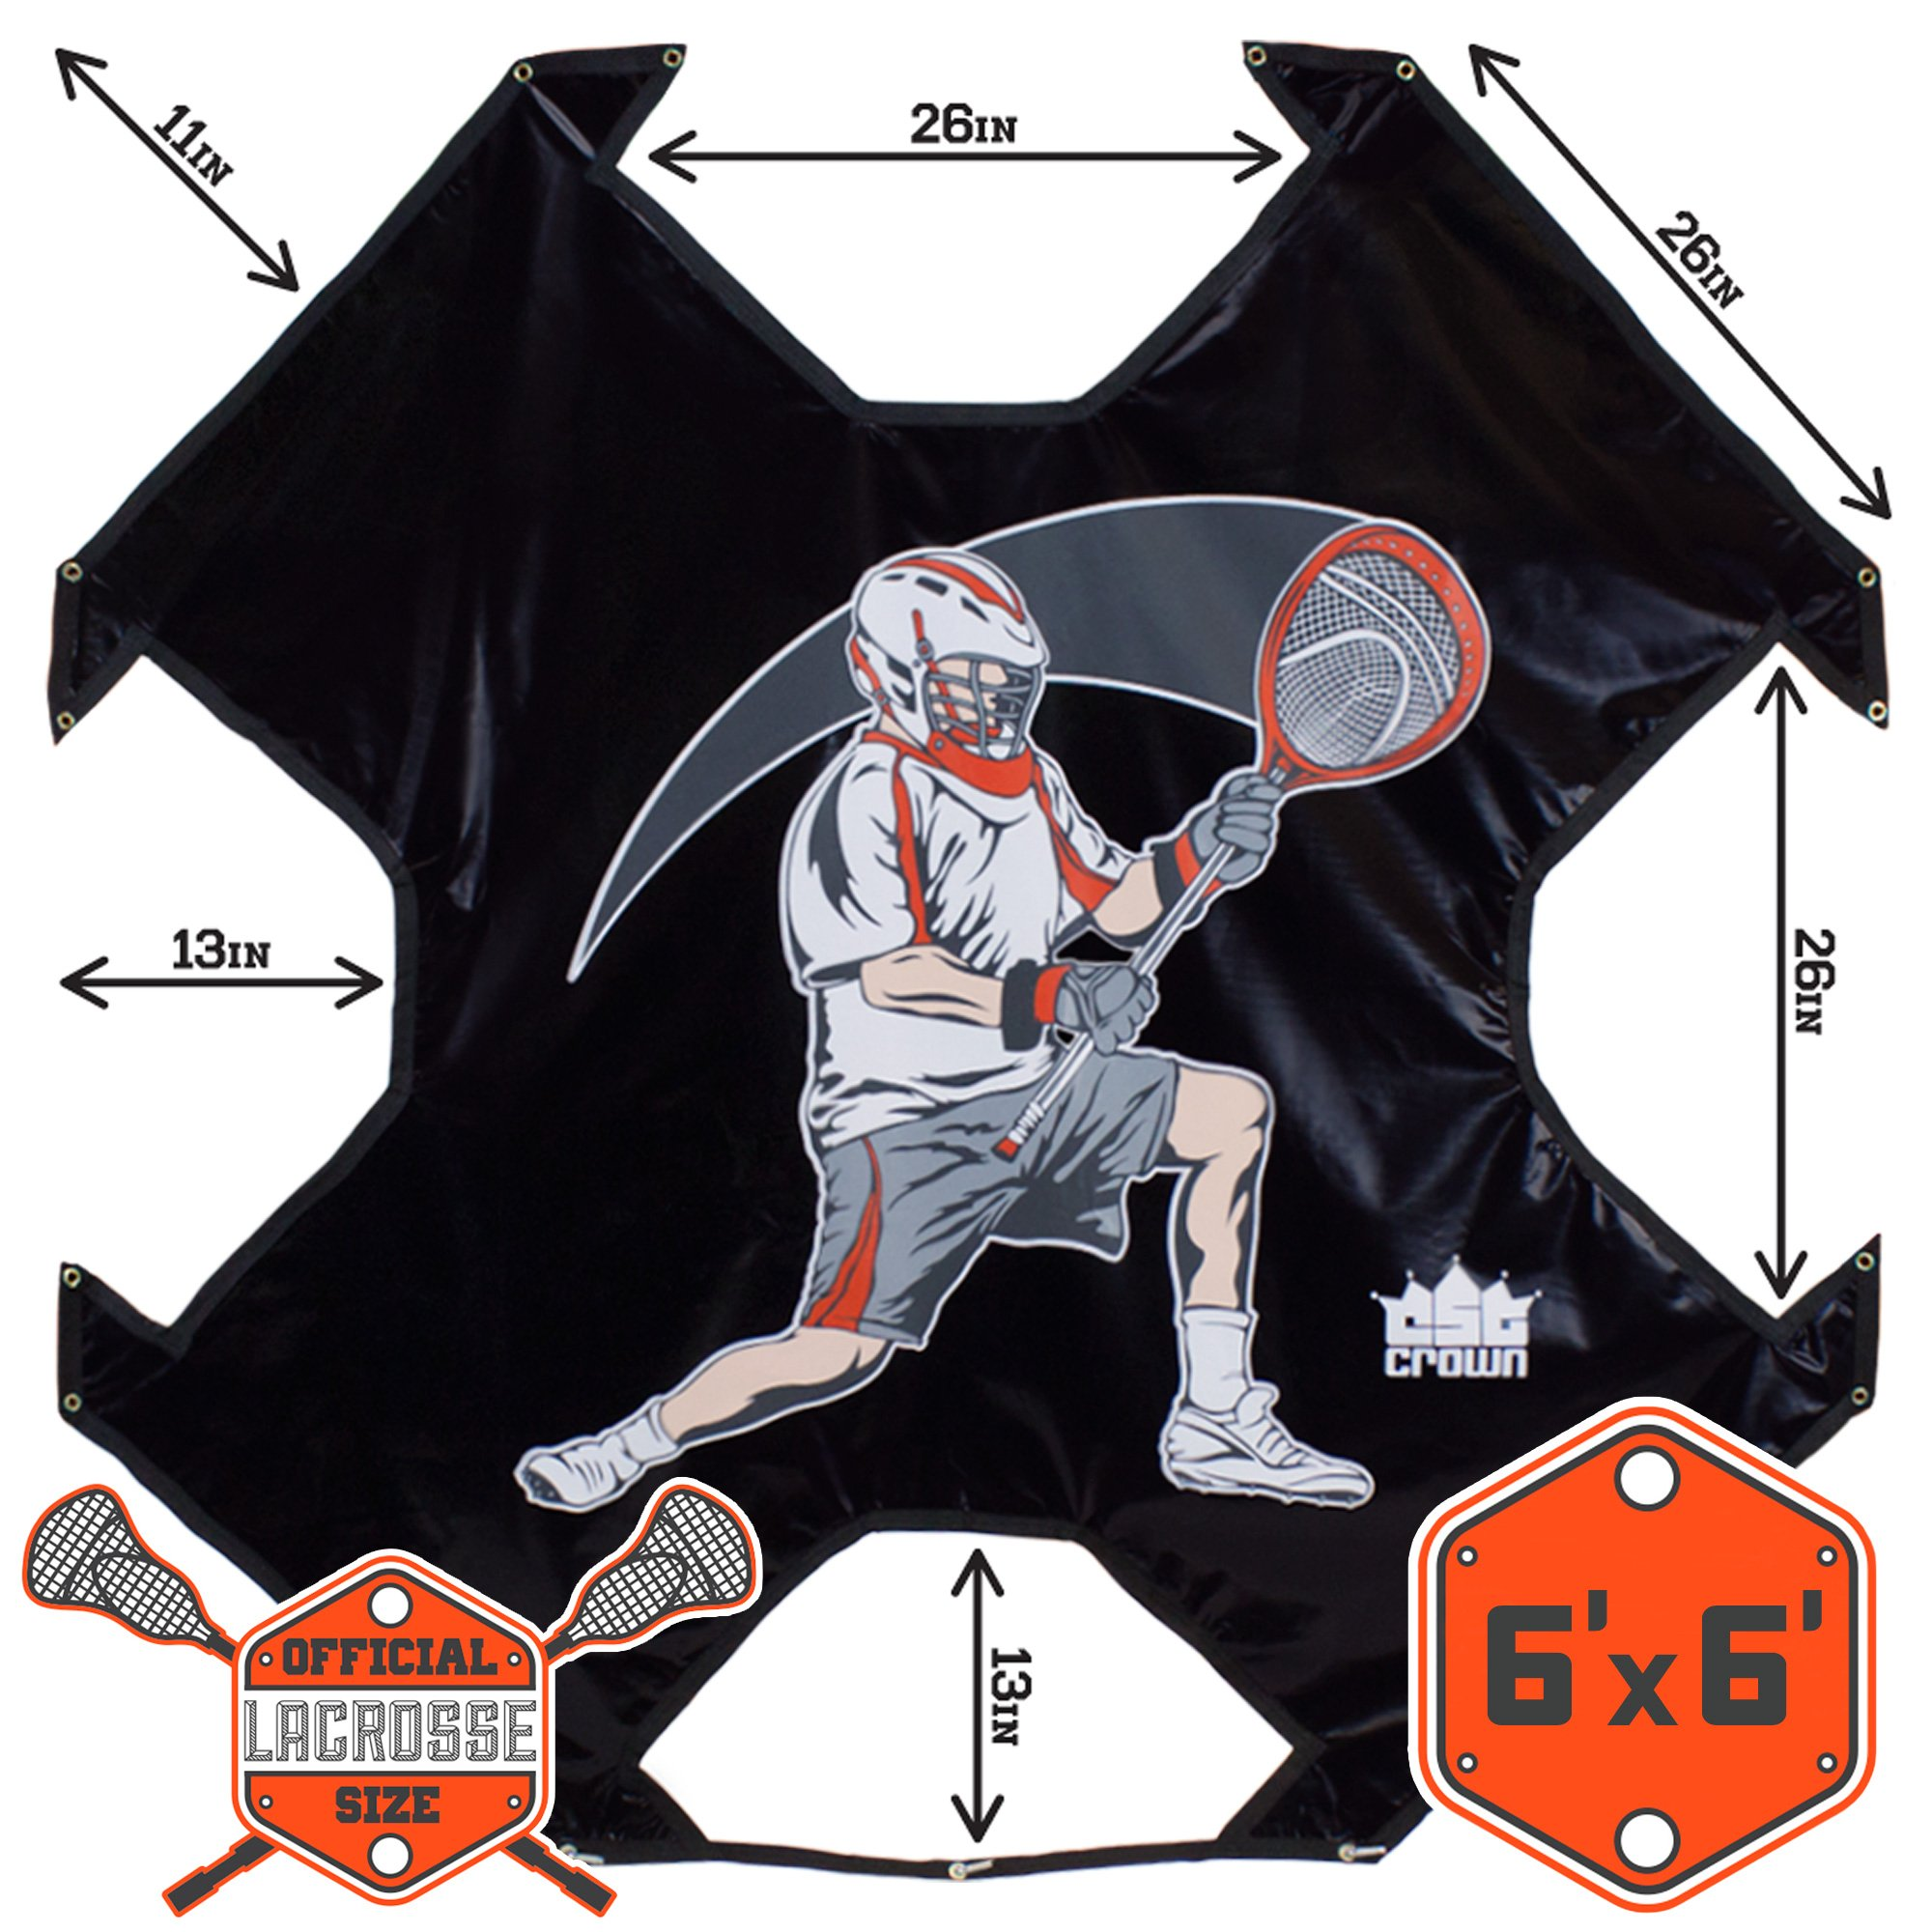 Lacrosse Goal Practice Target (Goal Not Included) - Fits Any Standard Size Lacrosee Goal! by Crown (Image #6)